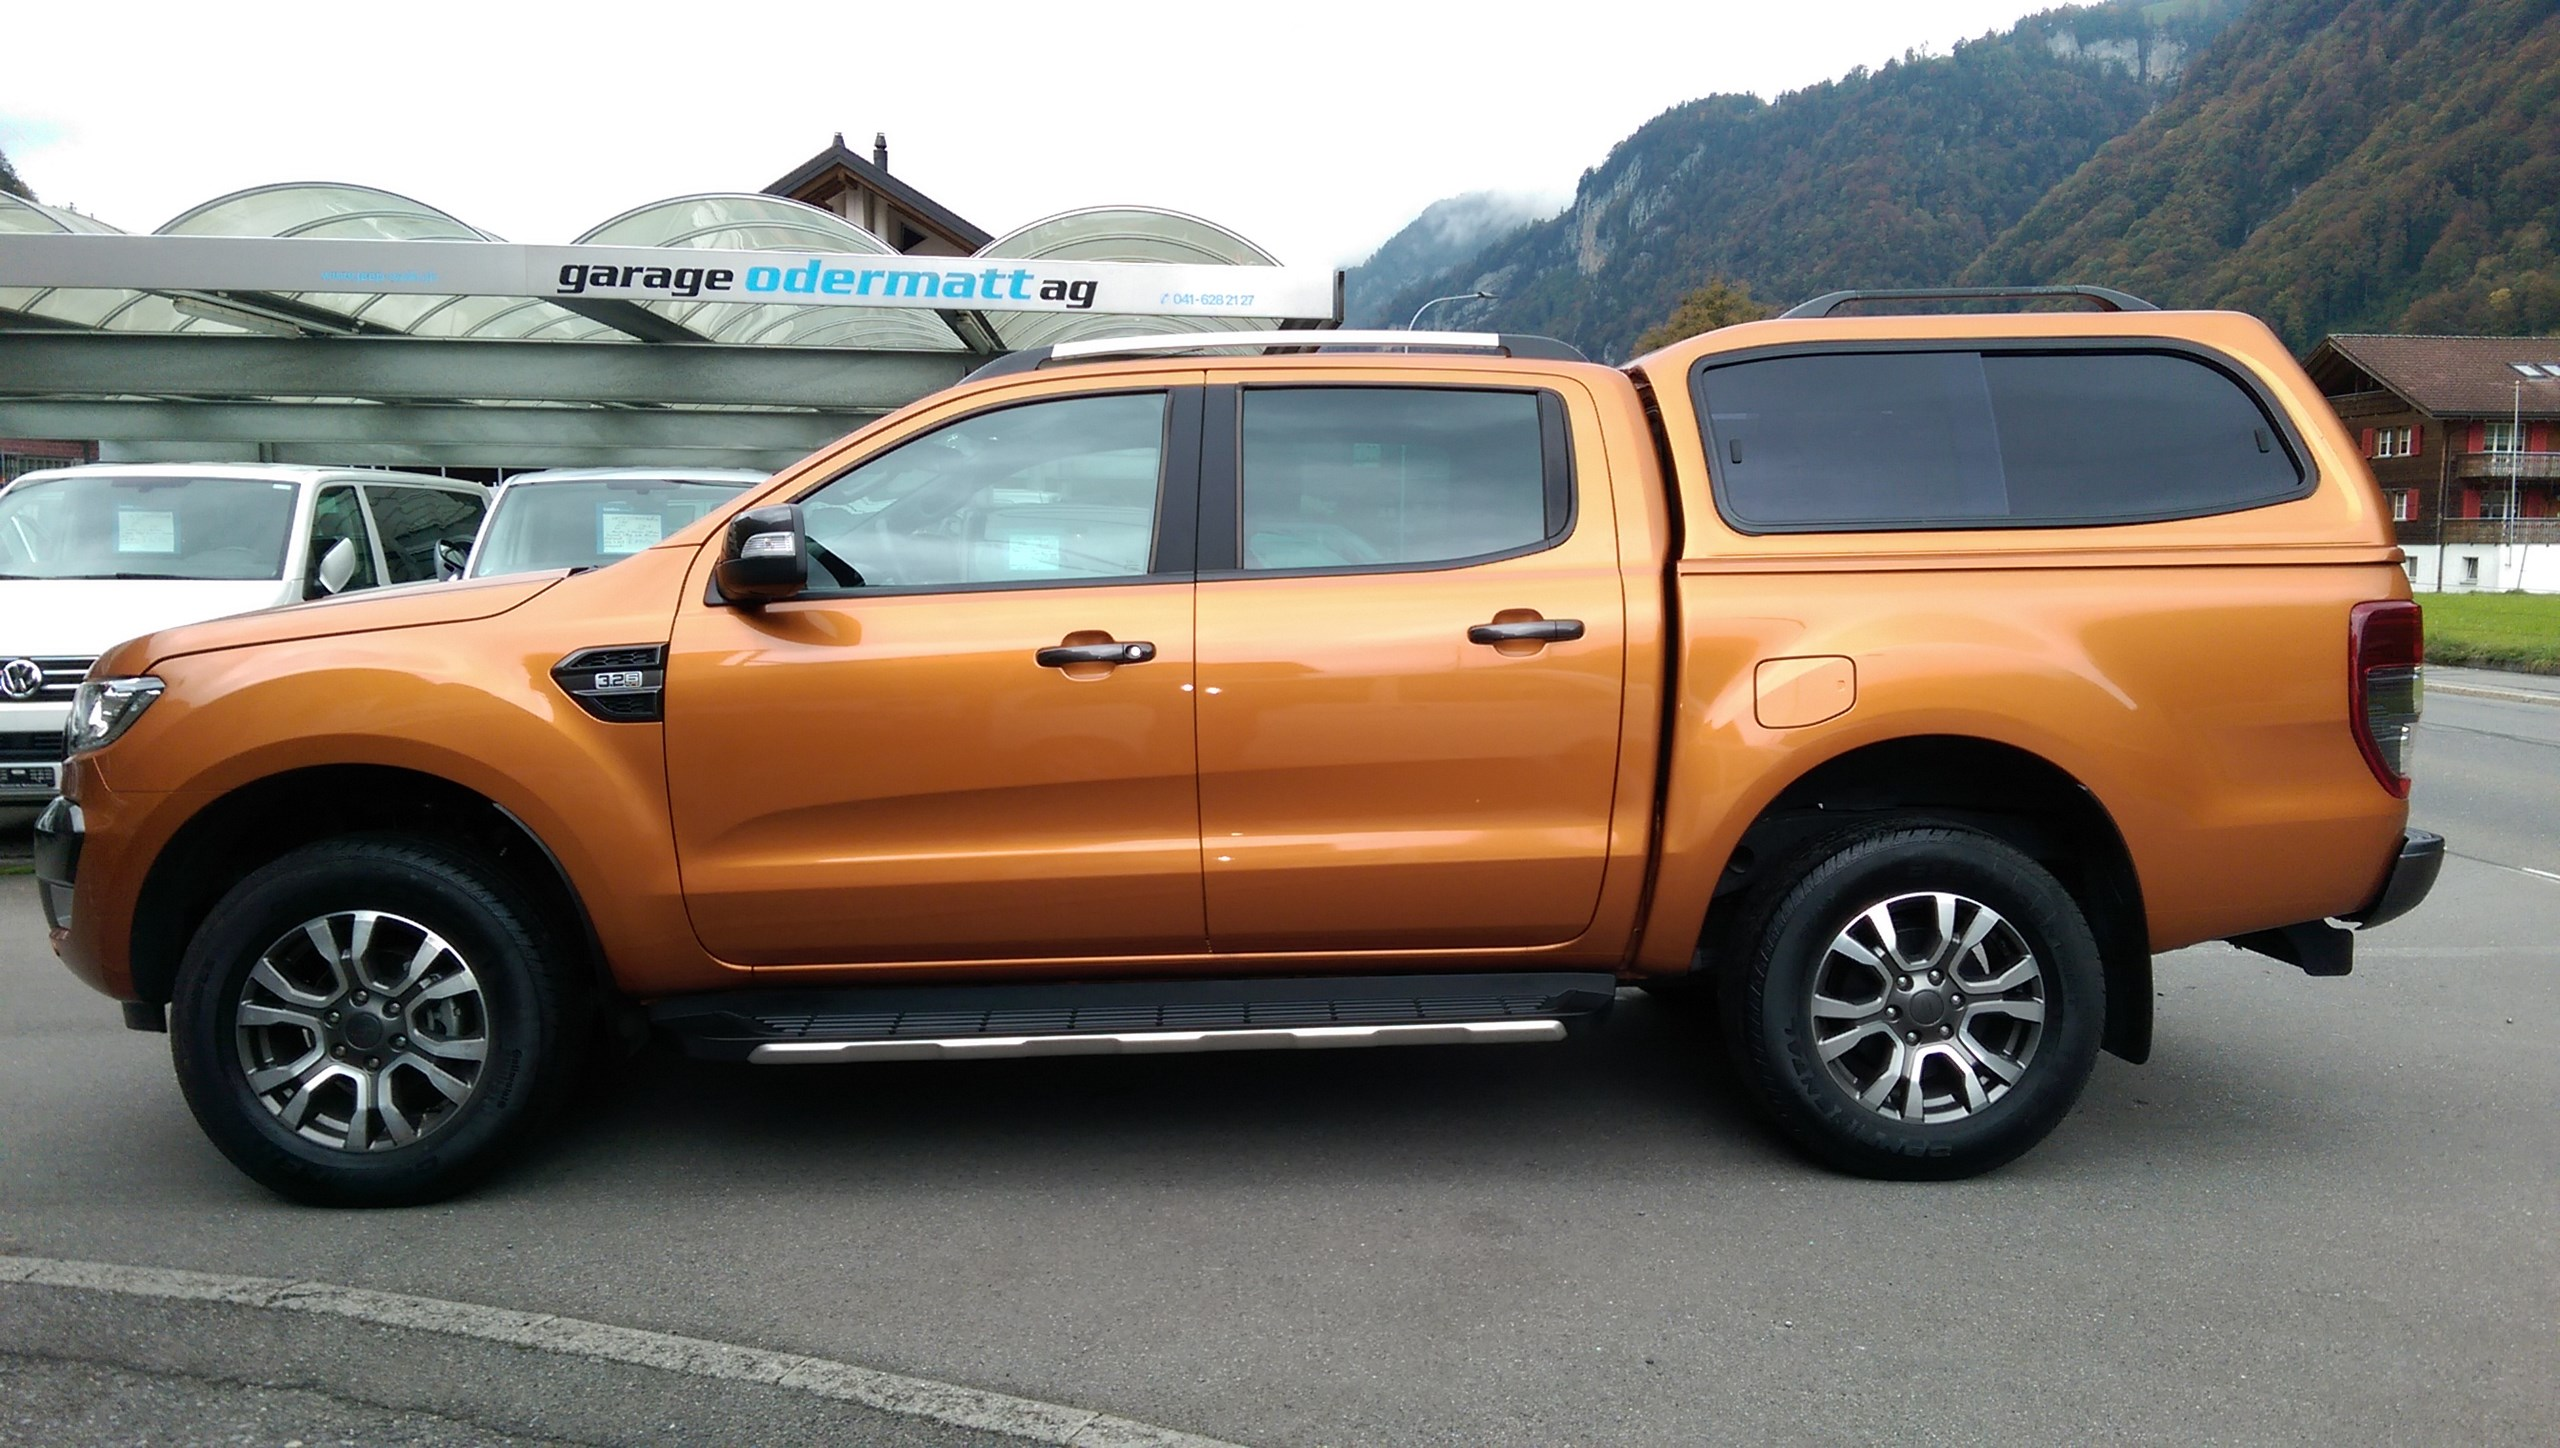 suv Ford Ranger Wildtrack 3.2 TDCi 4x4 A